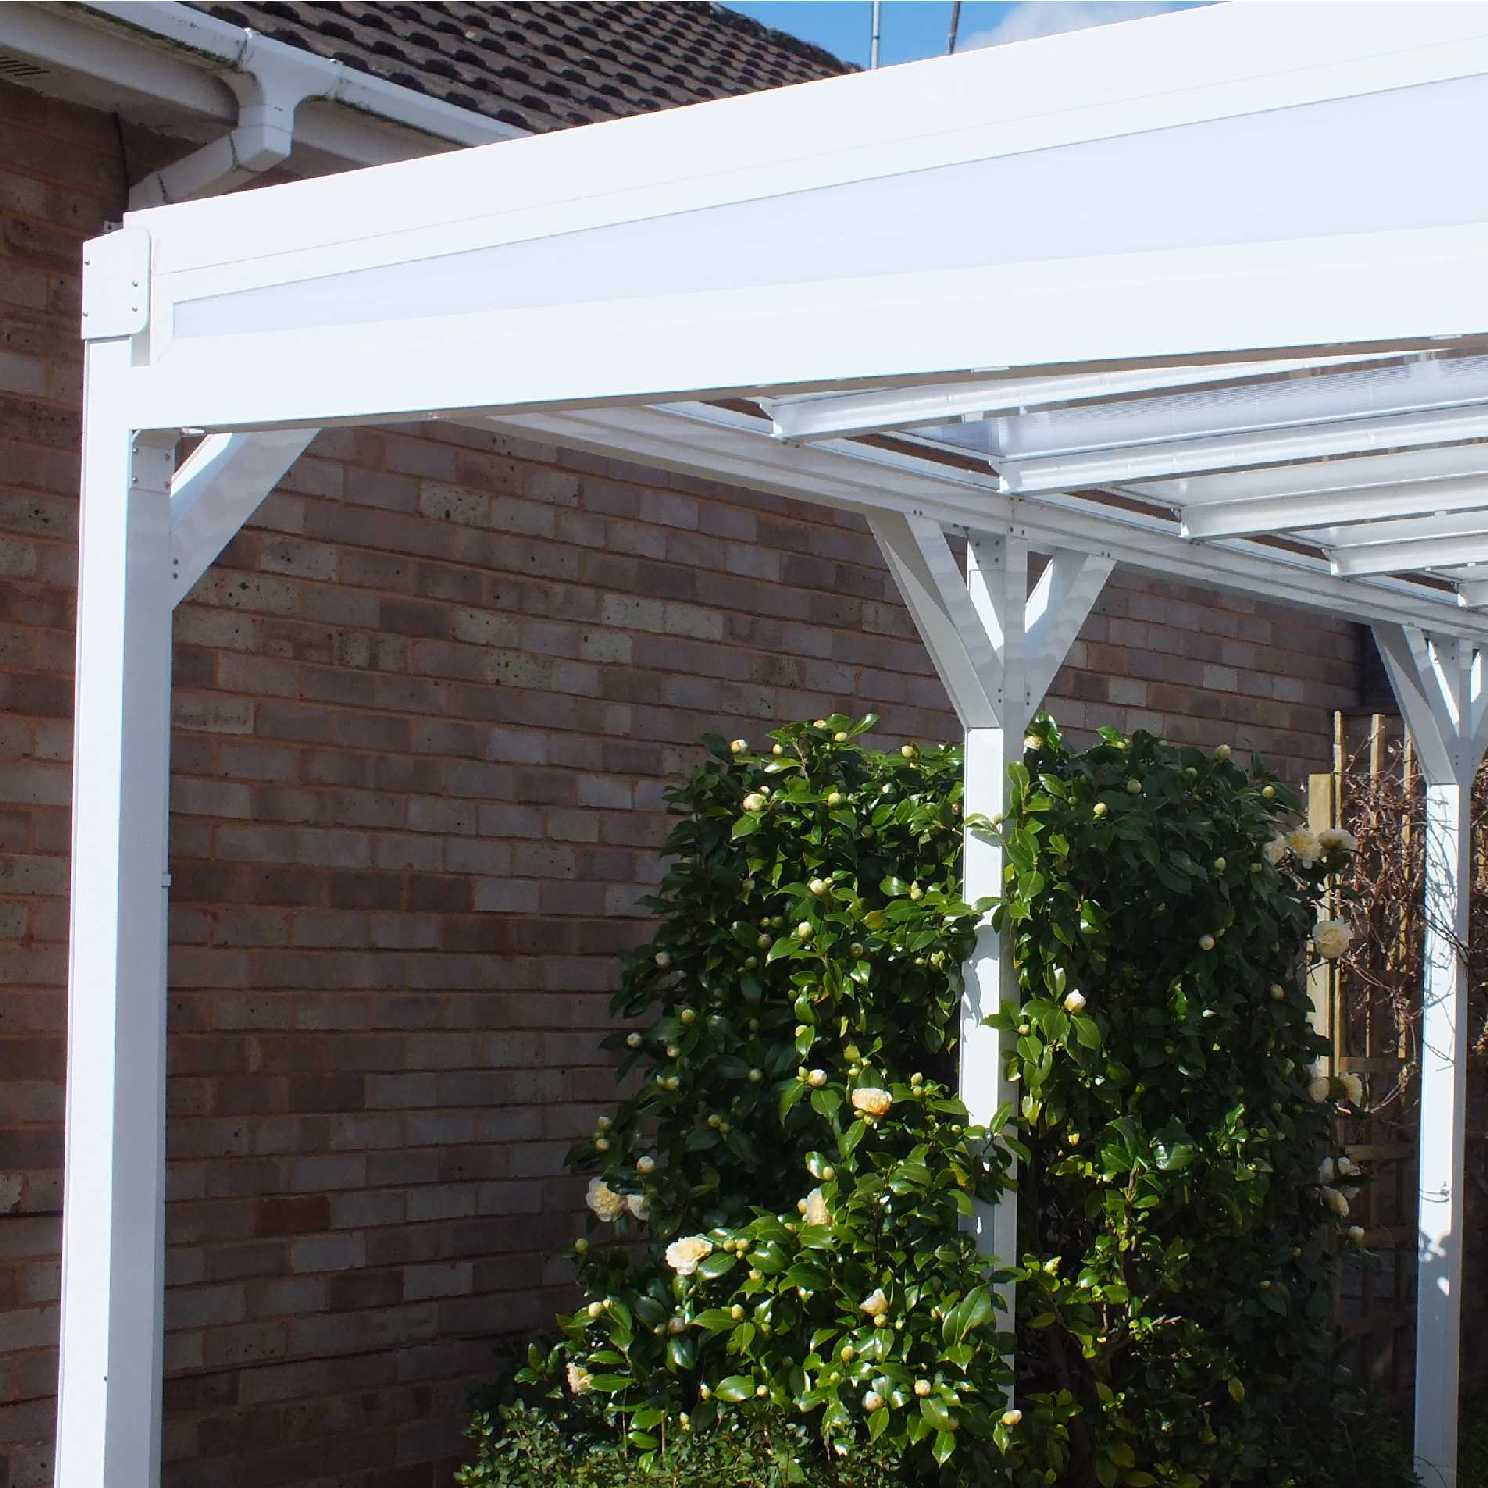 Omega Smart White Lean-To Canopy with 16mm Polycarbonate Glazing - 6.0m (W) x 2.0m (P), (3) Supporting Posts from Omega Build